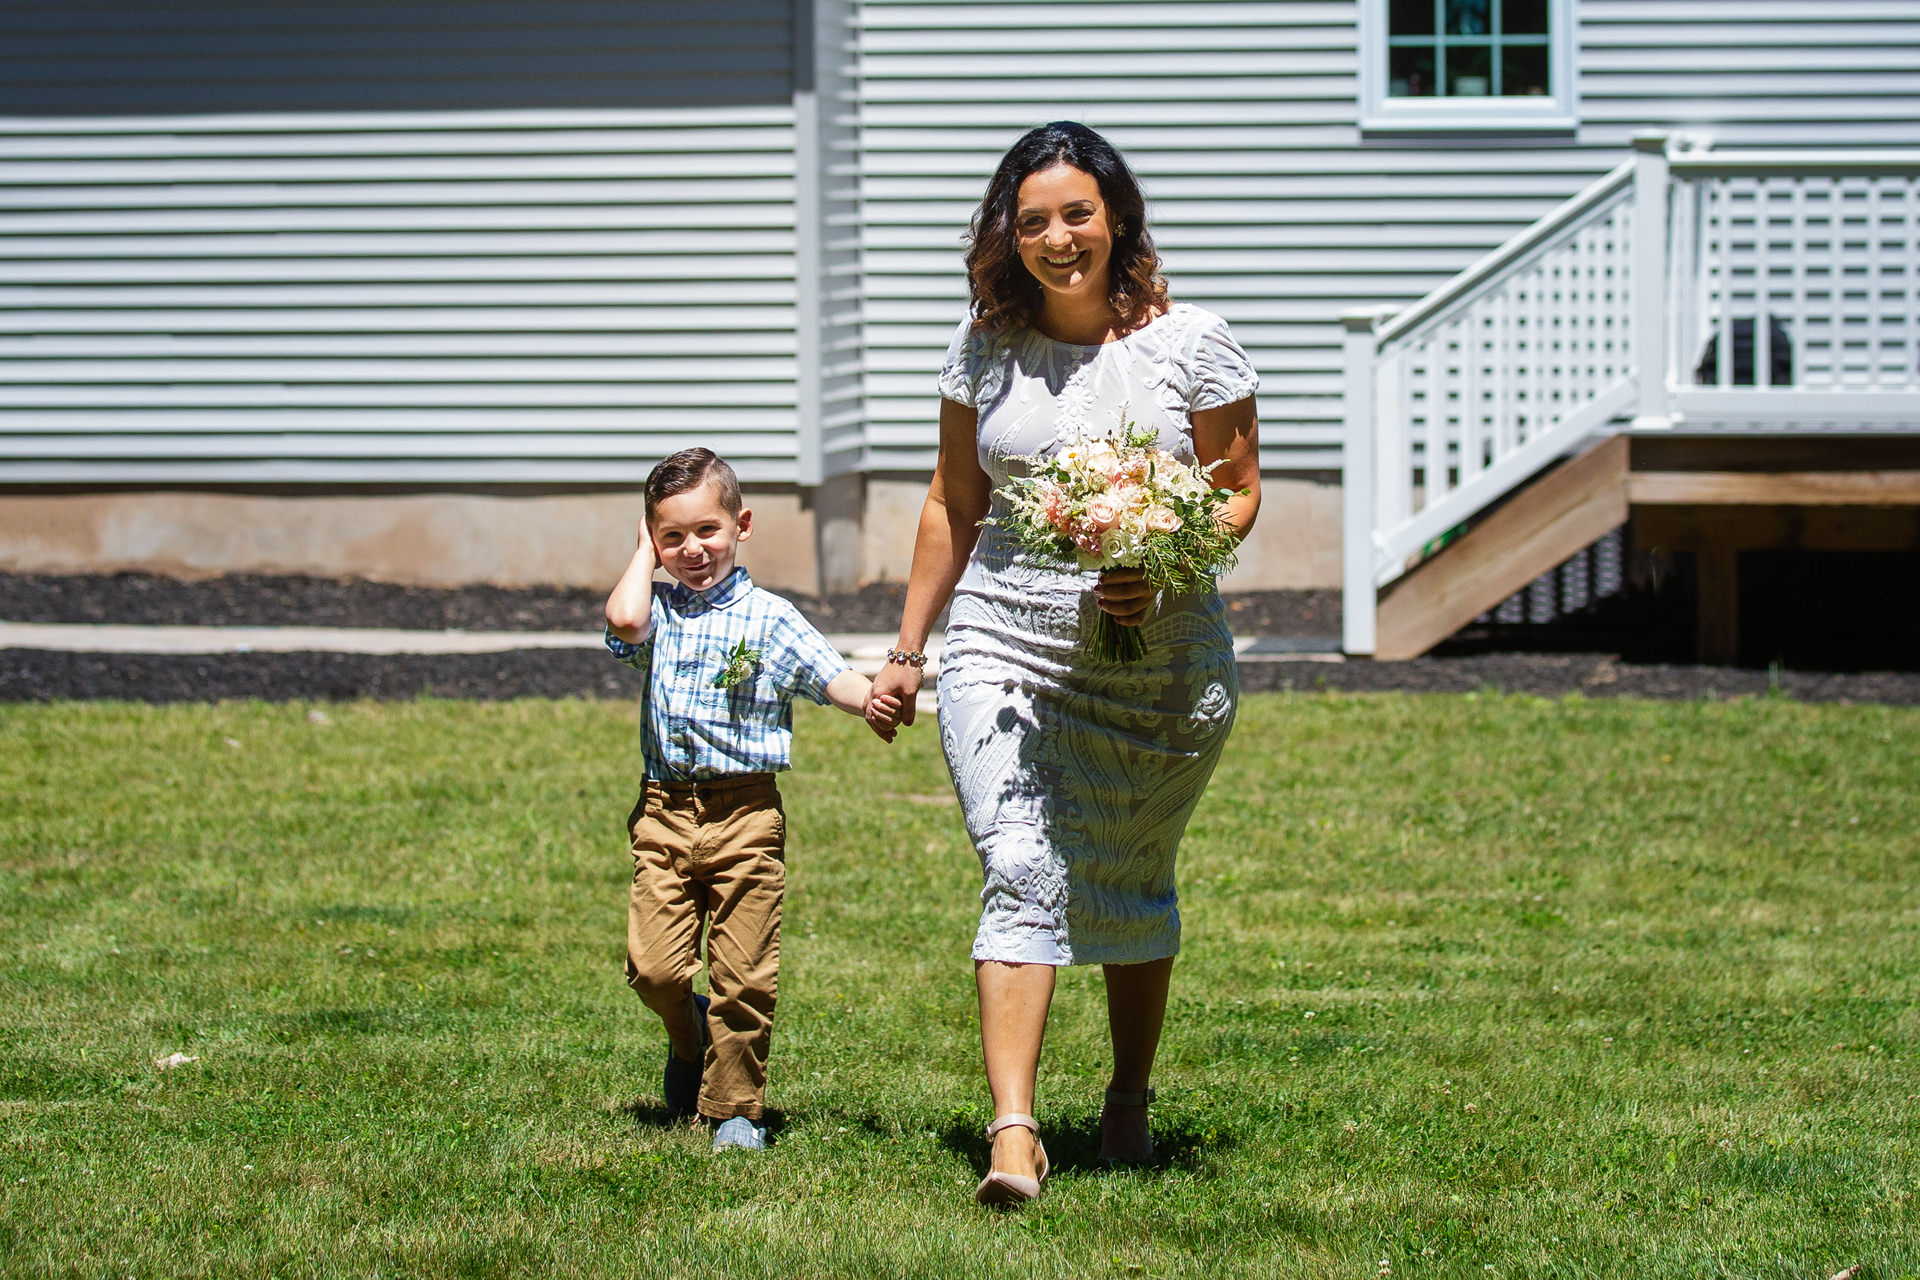 New Jersey Backyard Elopement Ceremony Photos   The bride and her young son walk down the aisle together